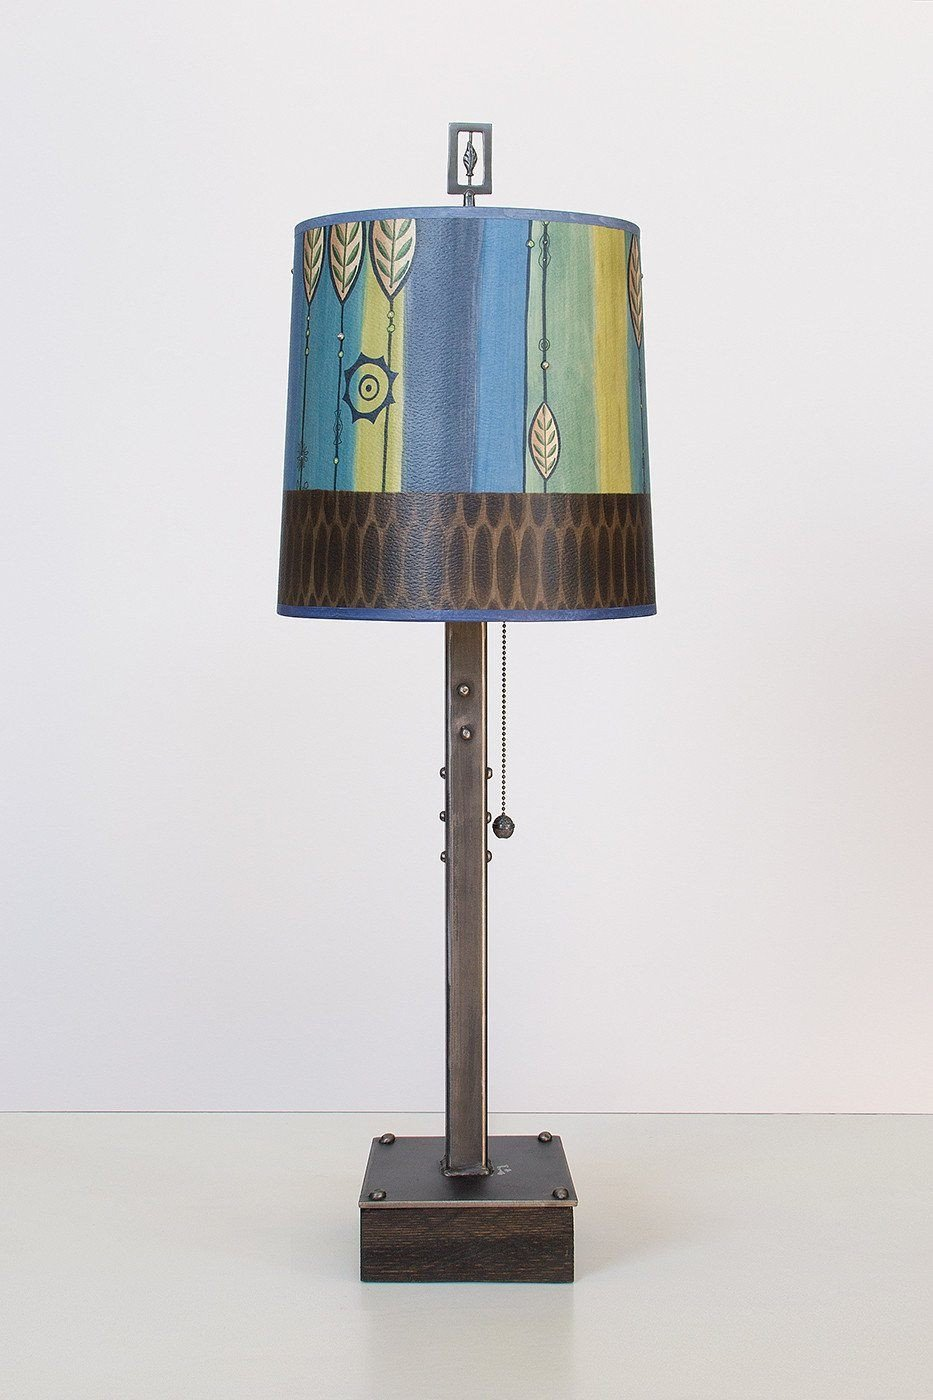 Steel Table Lamp on Wood with Medium Drum Shade in Leaf Stripe Blues